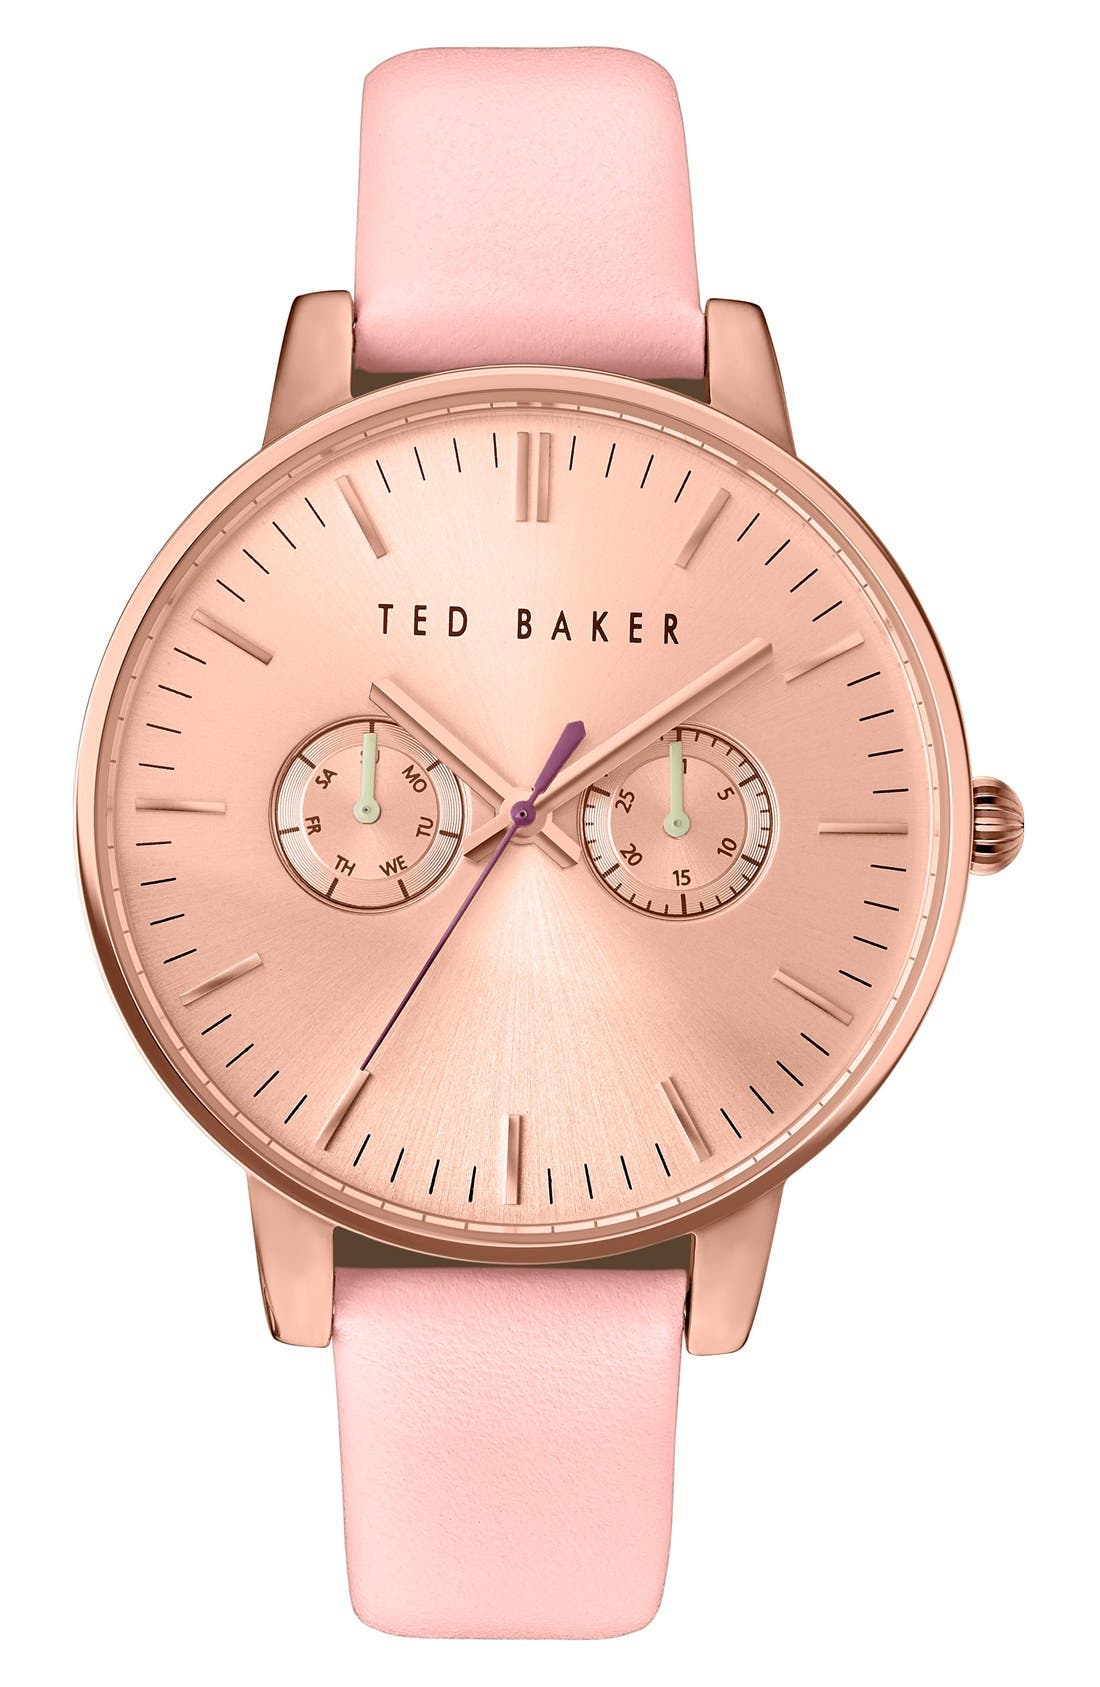 TED BAKER LONDON Dress Sport Multifunction Leather Strap Watch, 40mm